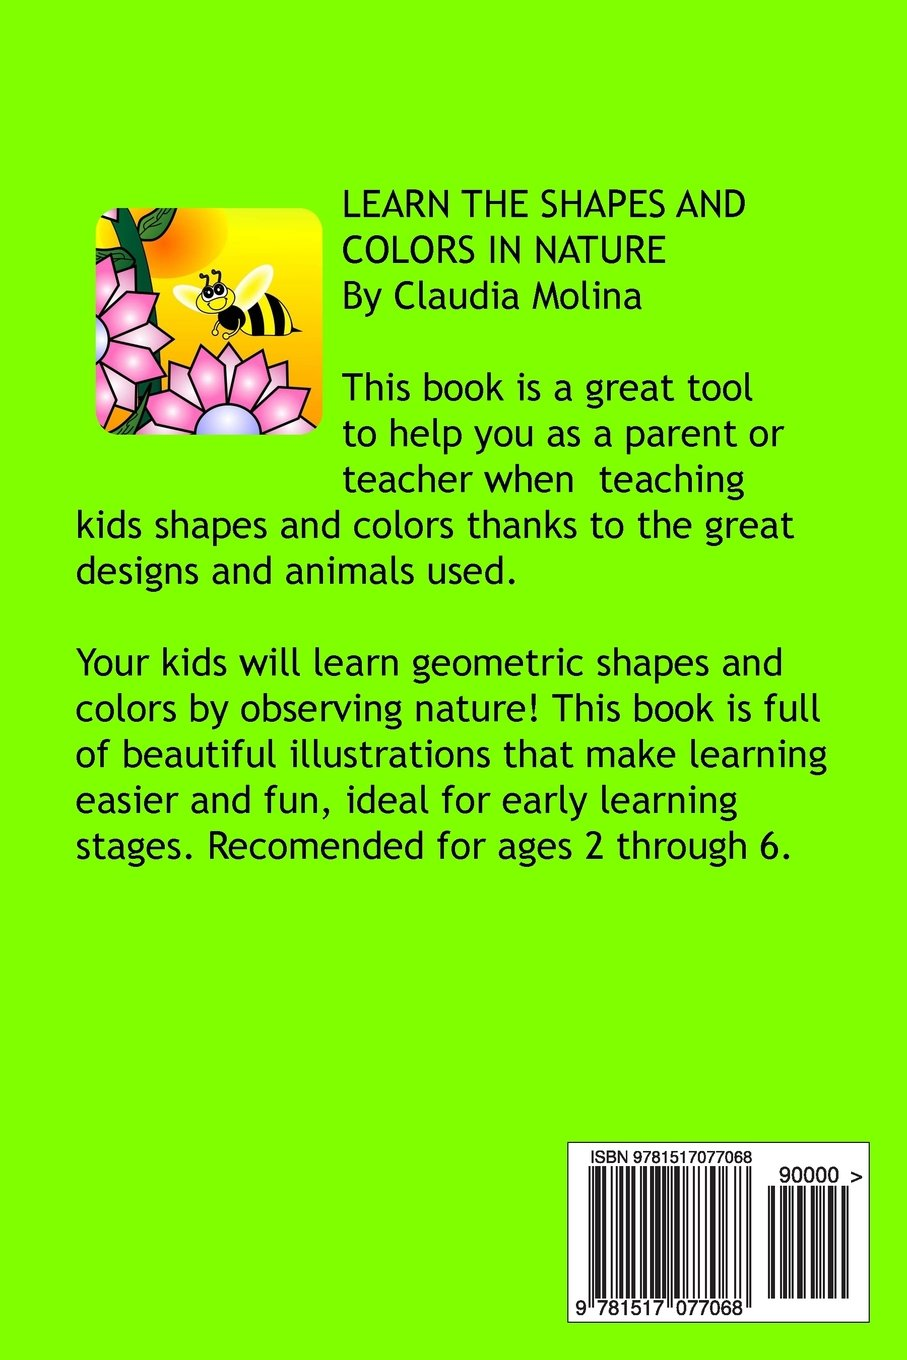 Learn the Shapes and Colors in nature: Claudia Molina: 9781517077068 ...